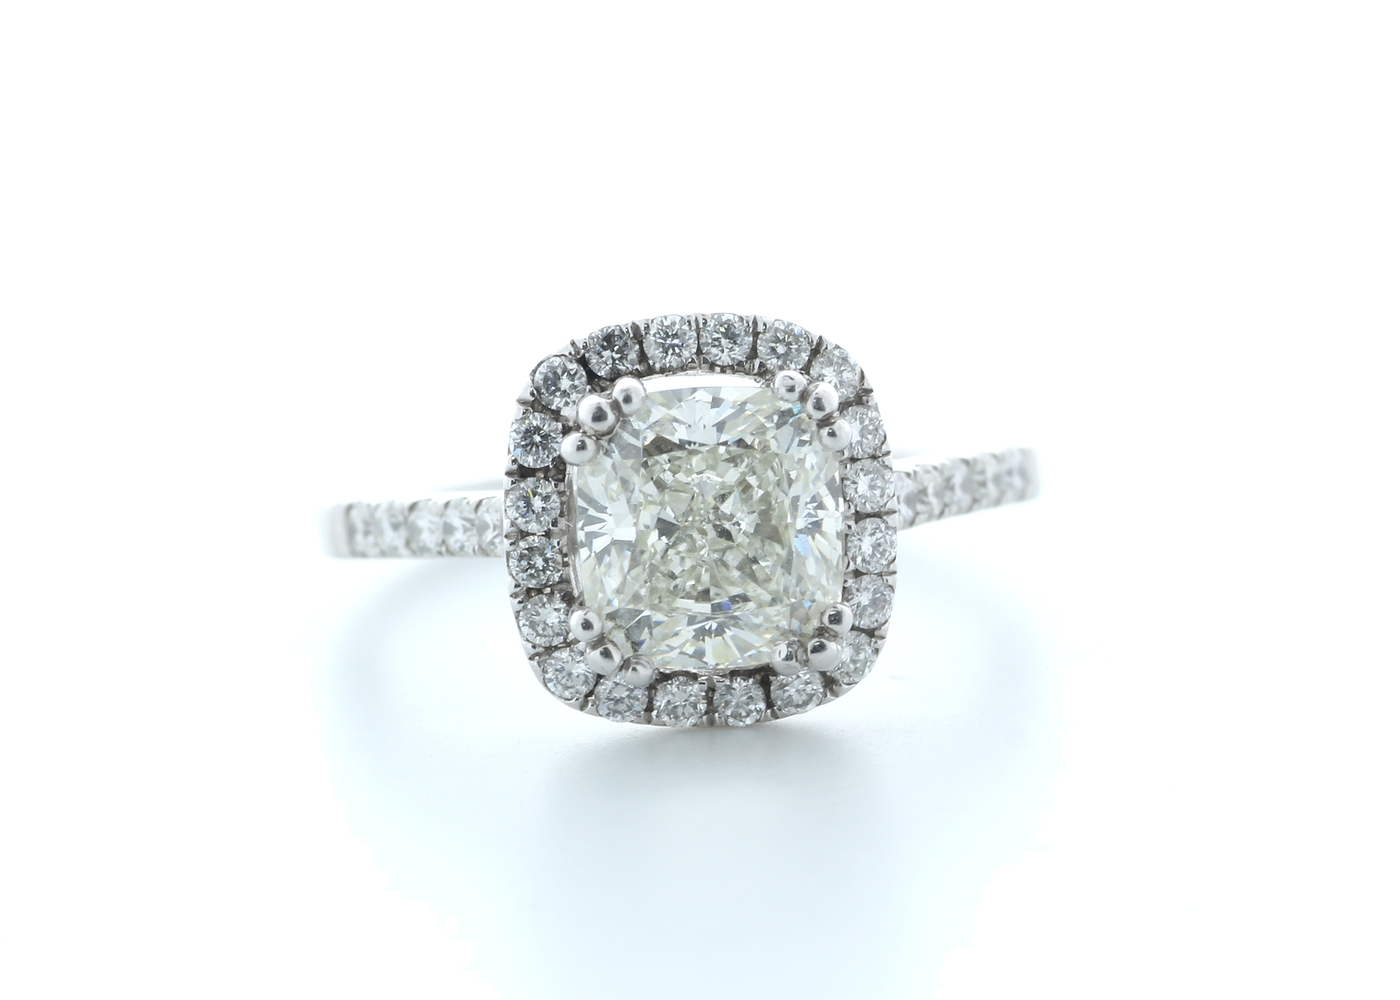 18ct White Gold Single Stone With Halo Setting Ring 2.63 (2.13) Carats